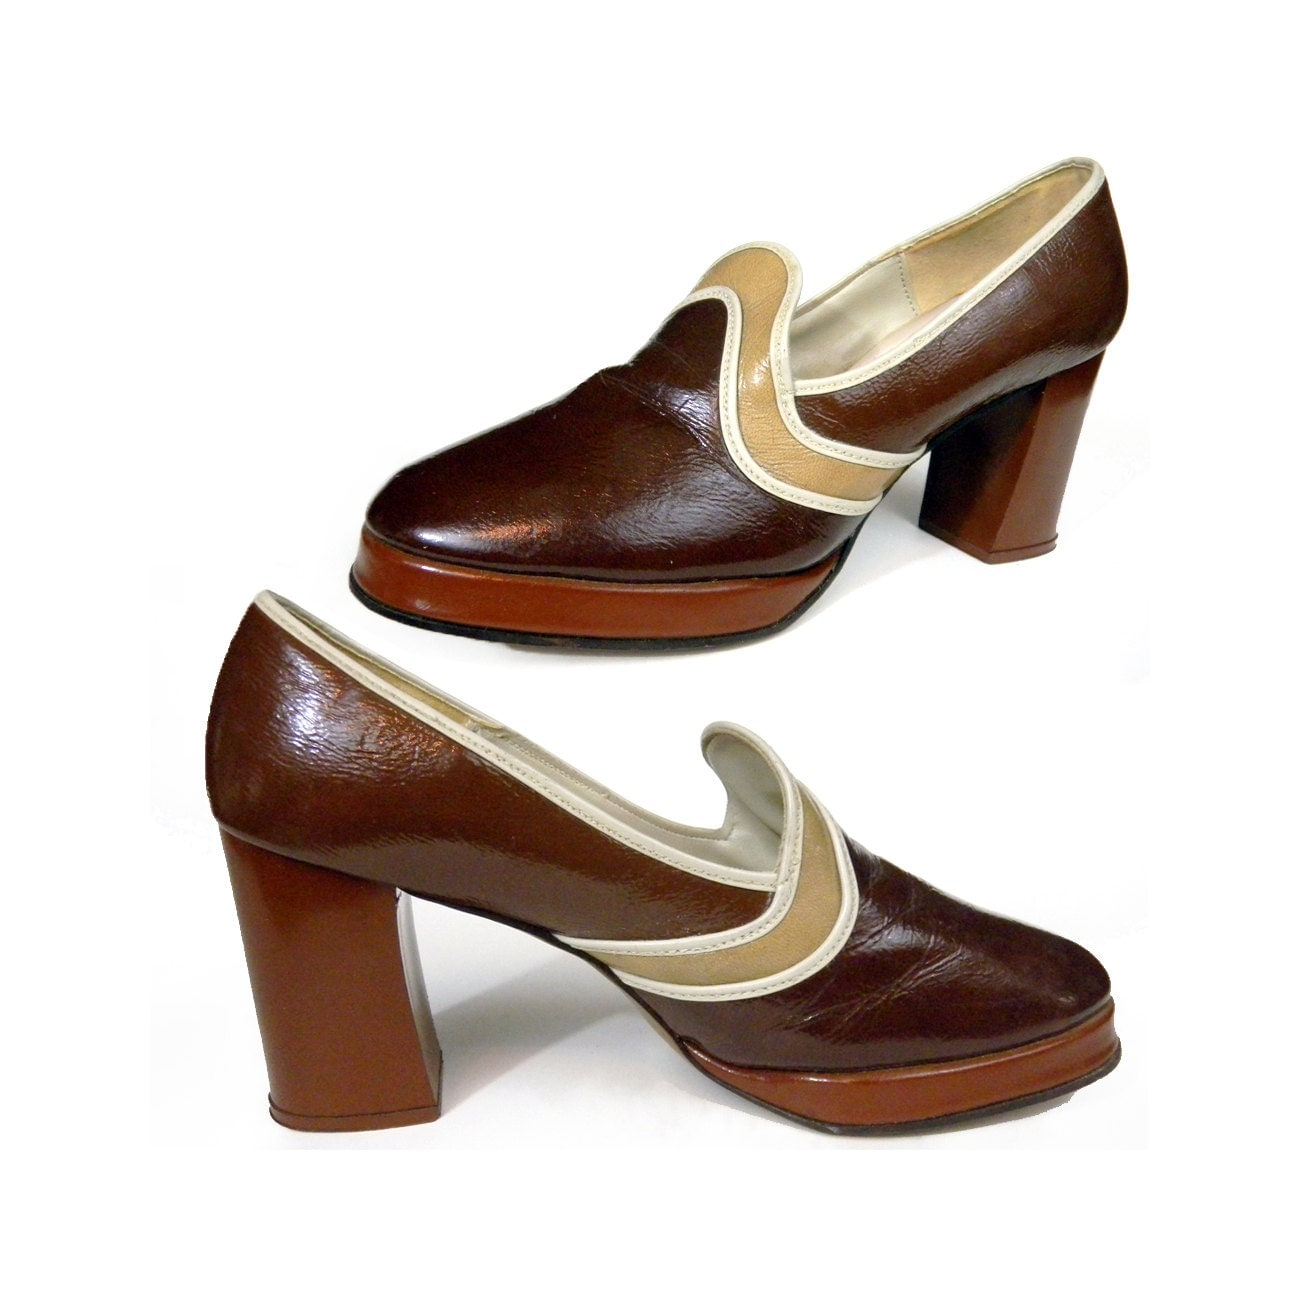 vintage 70s platform disco shoes brown leather by